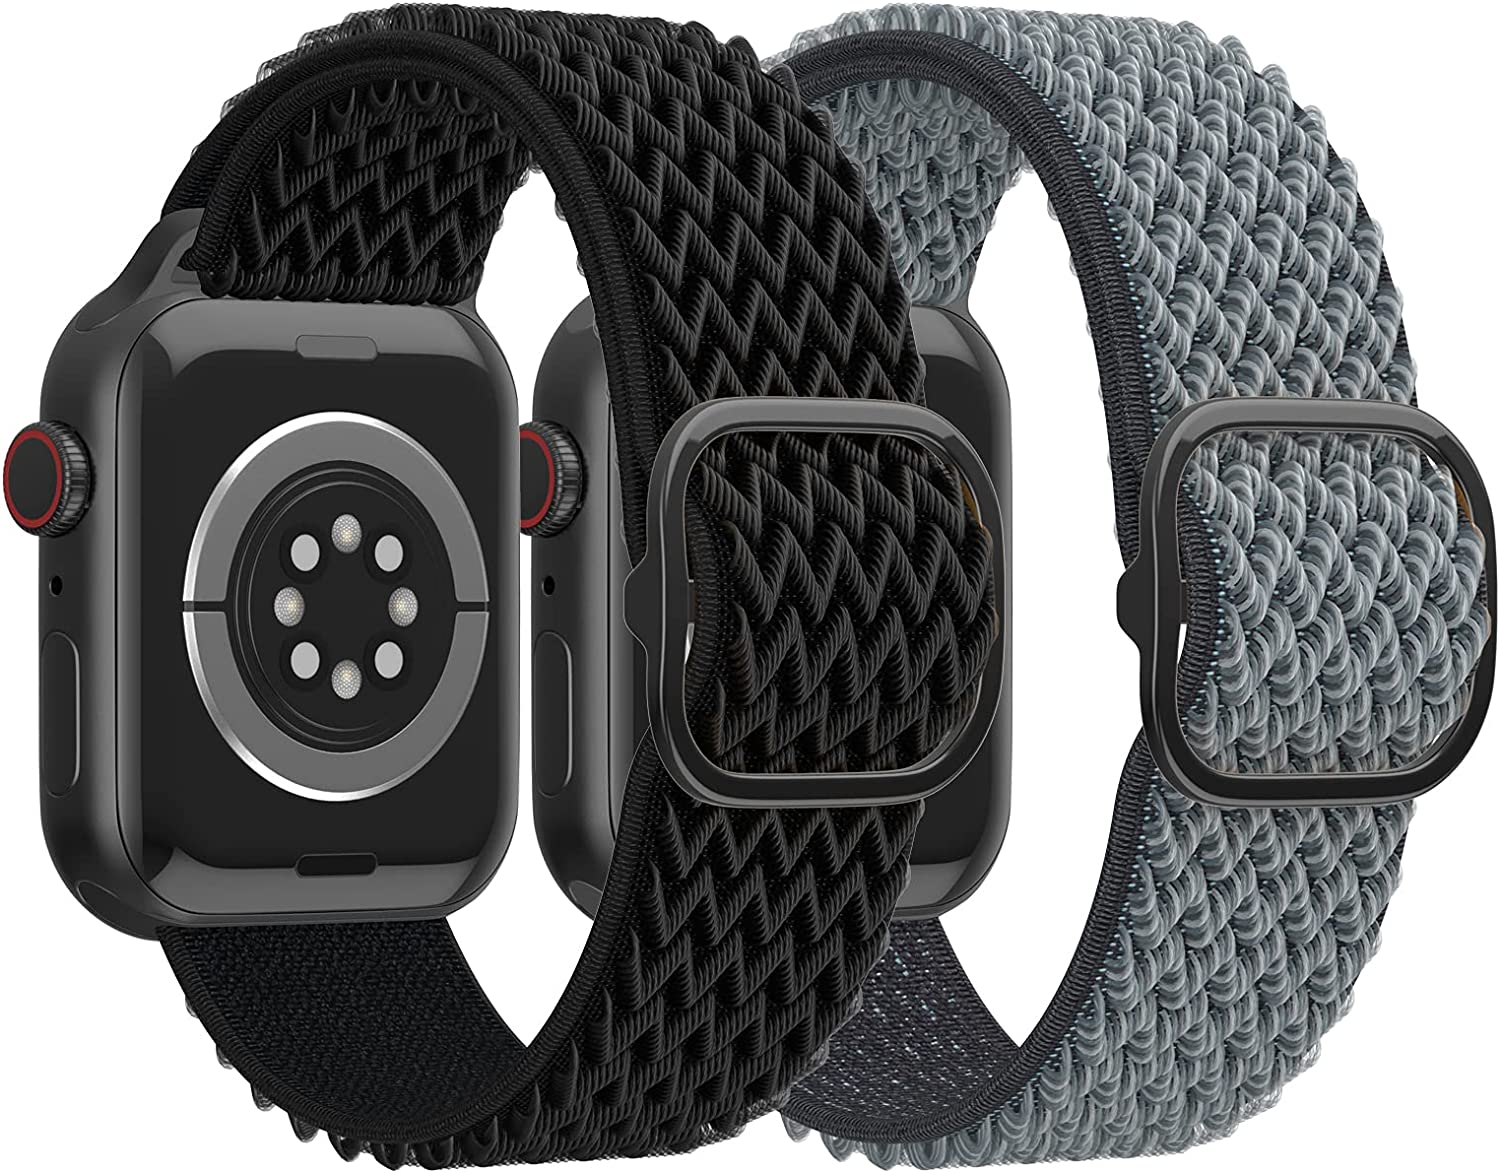 SKYLET Stretchy Solo Loop Bands Compatible with Apple Watch 38mm 40mm 42mm 44mm Series 6/5/4/3/2/1/se Women Men, 2 Pack Sport Nylon Adjustable Braided Elastic Replacement iWatch Straps